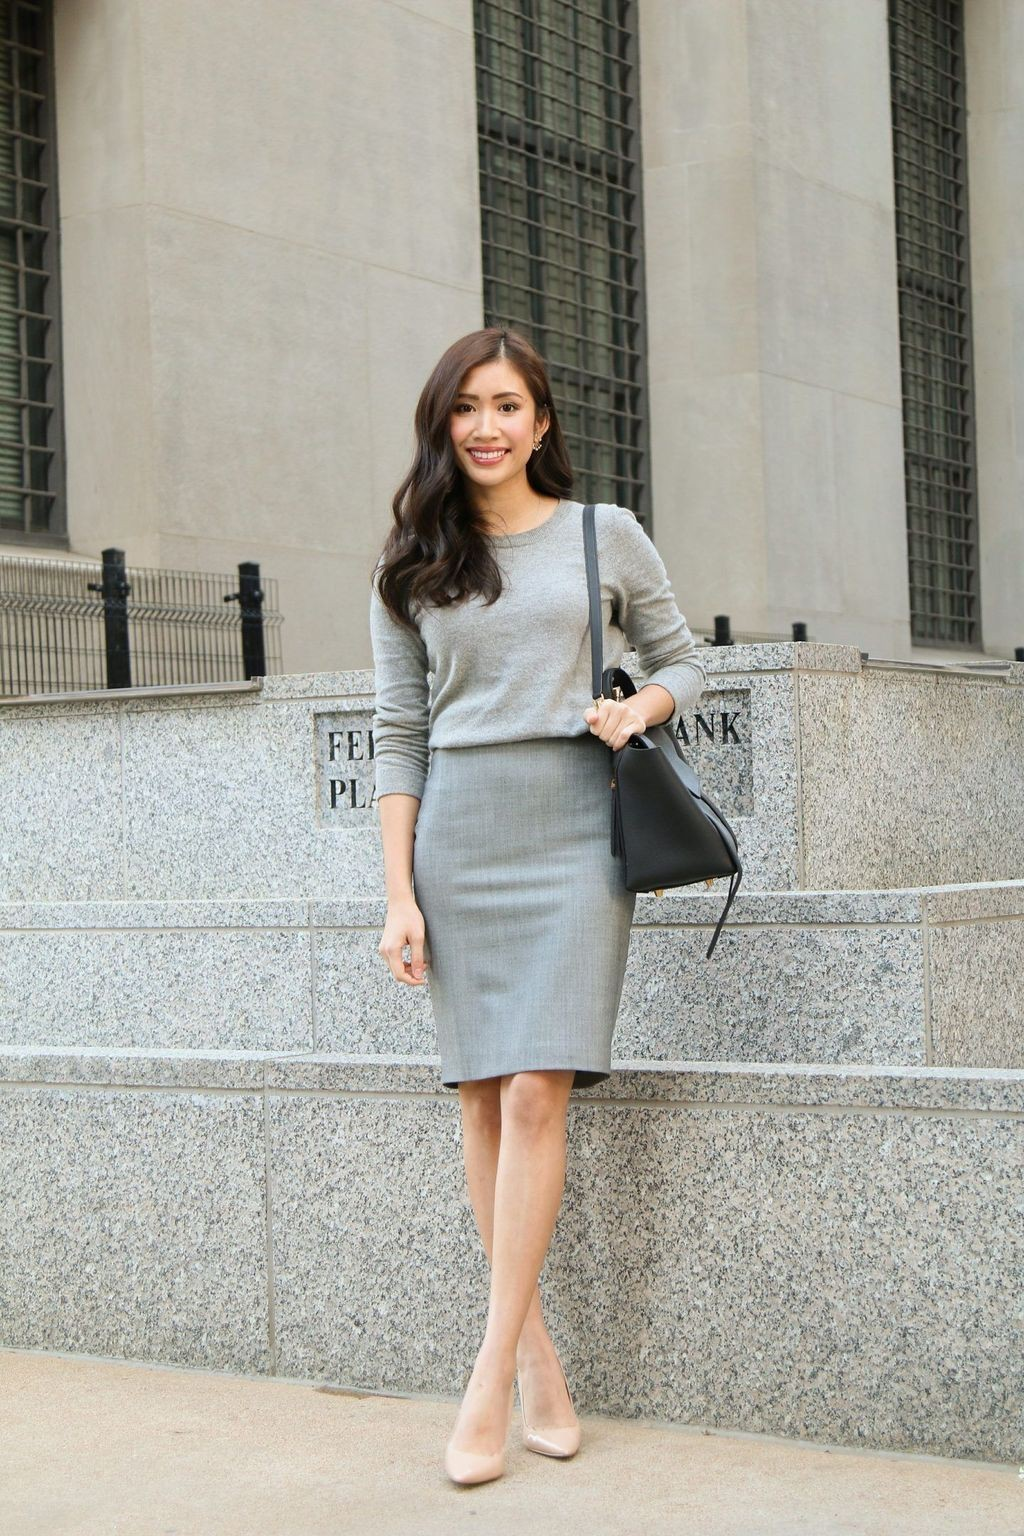 Beige and white colour outfit, you must try with business casual, pencil skirt, trousers, workwear